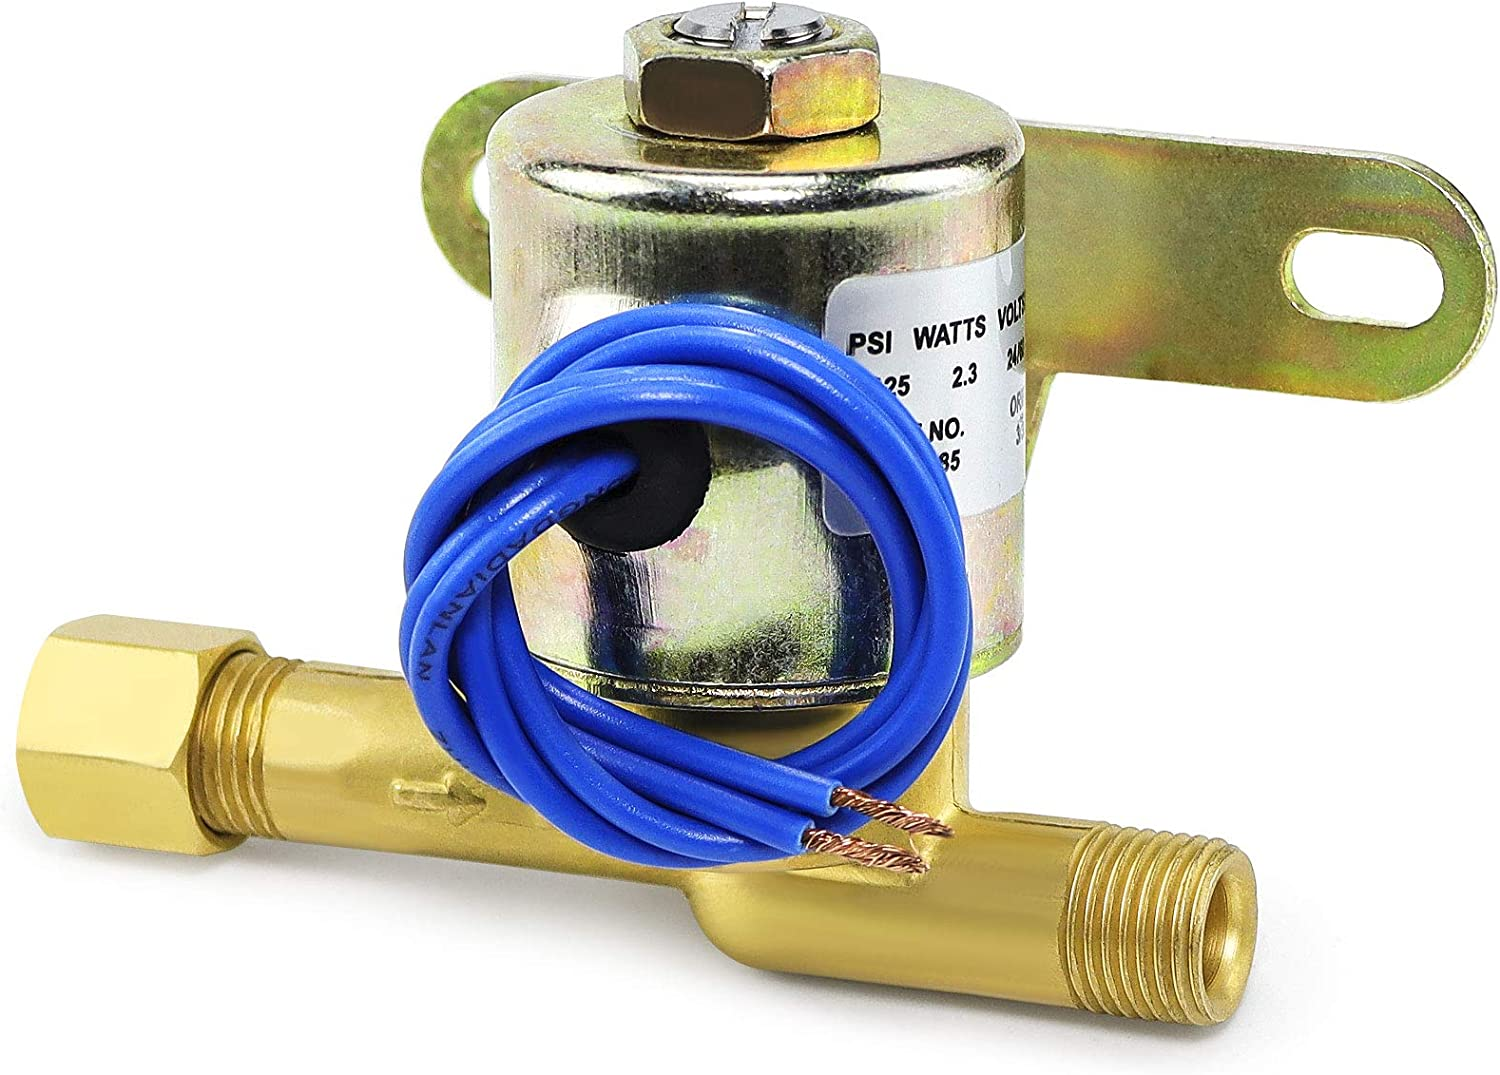 Humidifier Water Solenoid Some reservation Valve for 4040 Aprilaire Exact Lowest price challenge